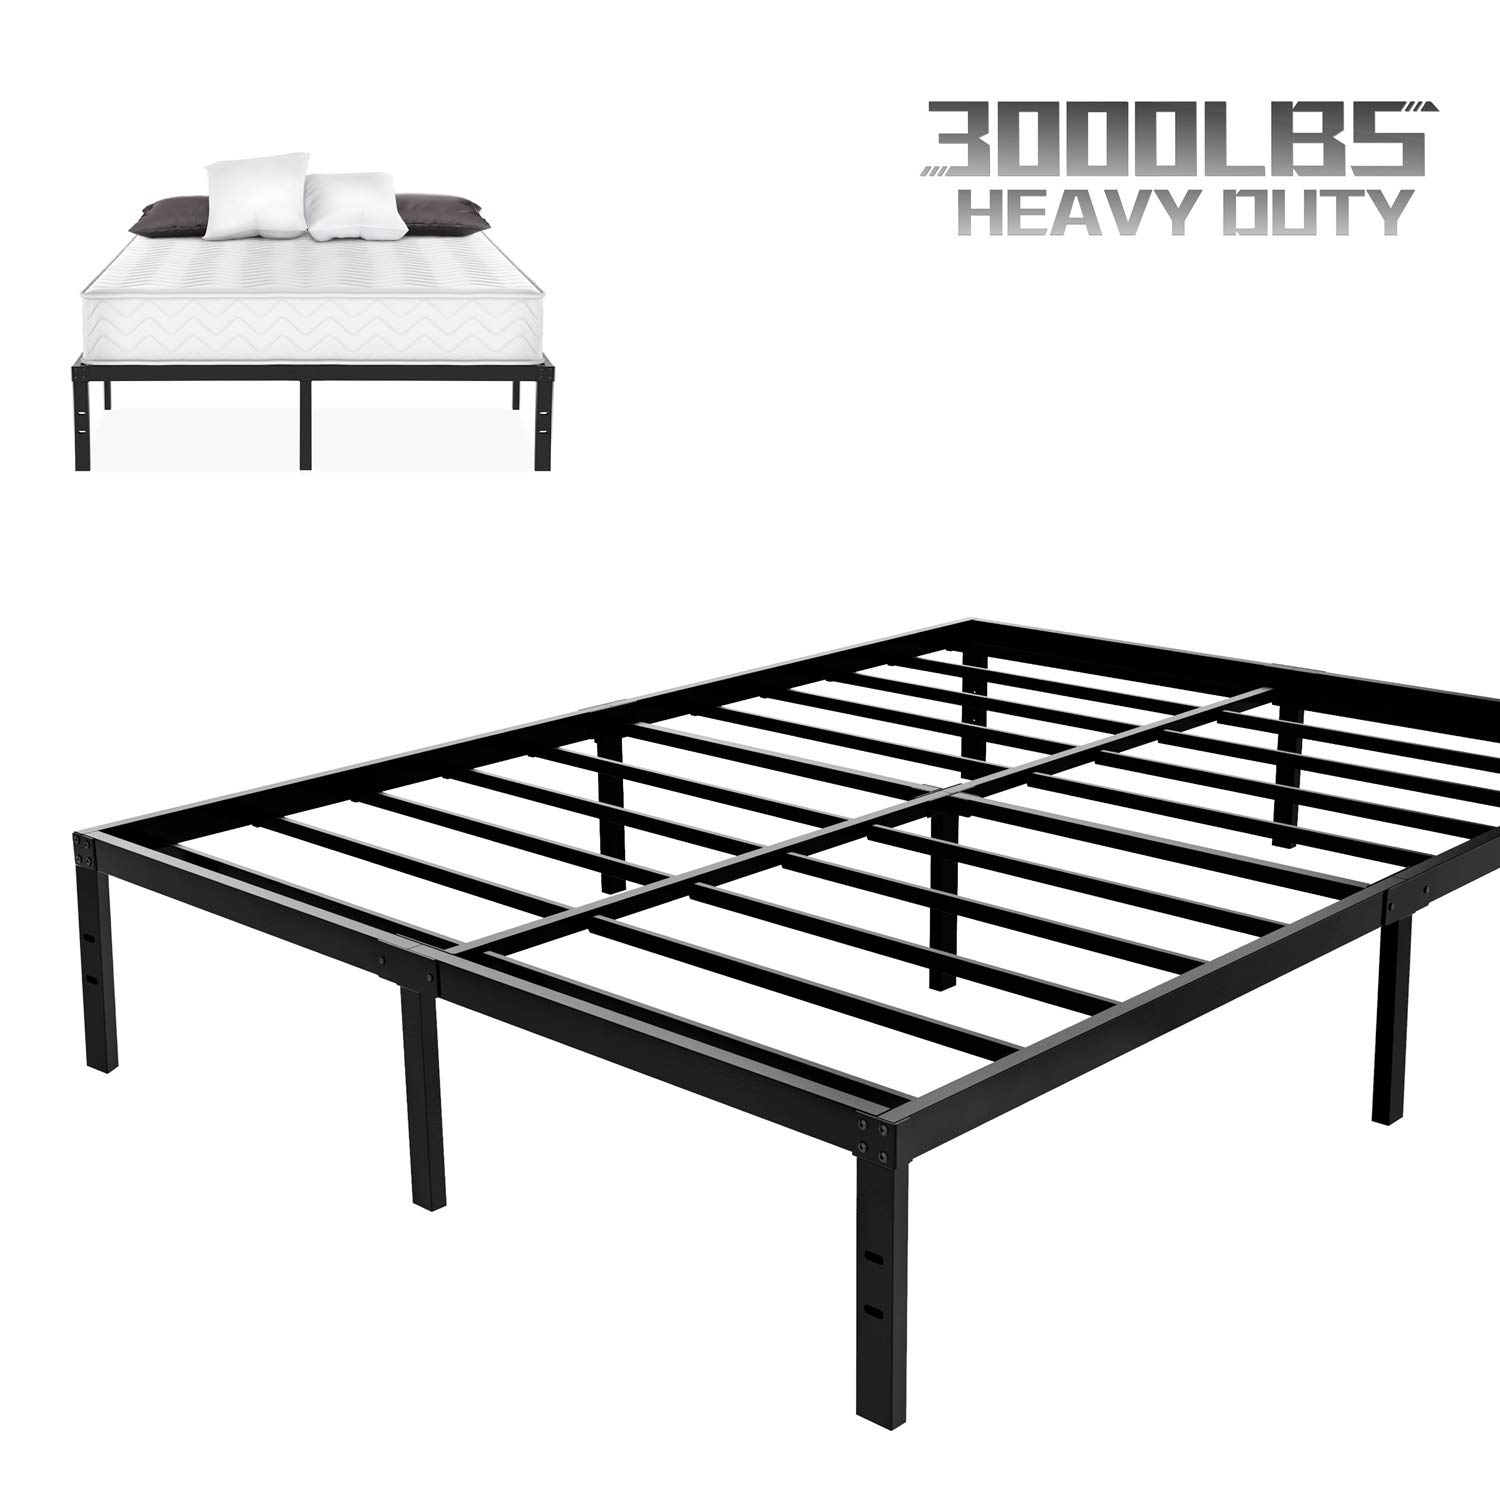 NOAH MEGATRON Heavy Duty Queen Platform Bed Frame, Slatted Bed Base 14 Inch Mattress Foundation Bed Frame,12 Inch Under-Bed Storage,No Box Spring Needed (Queen) by NOAH MEGATRON